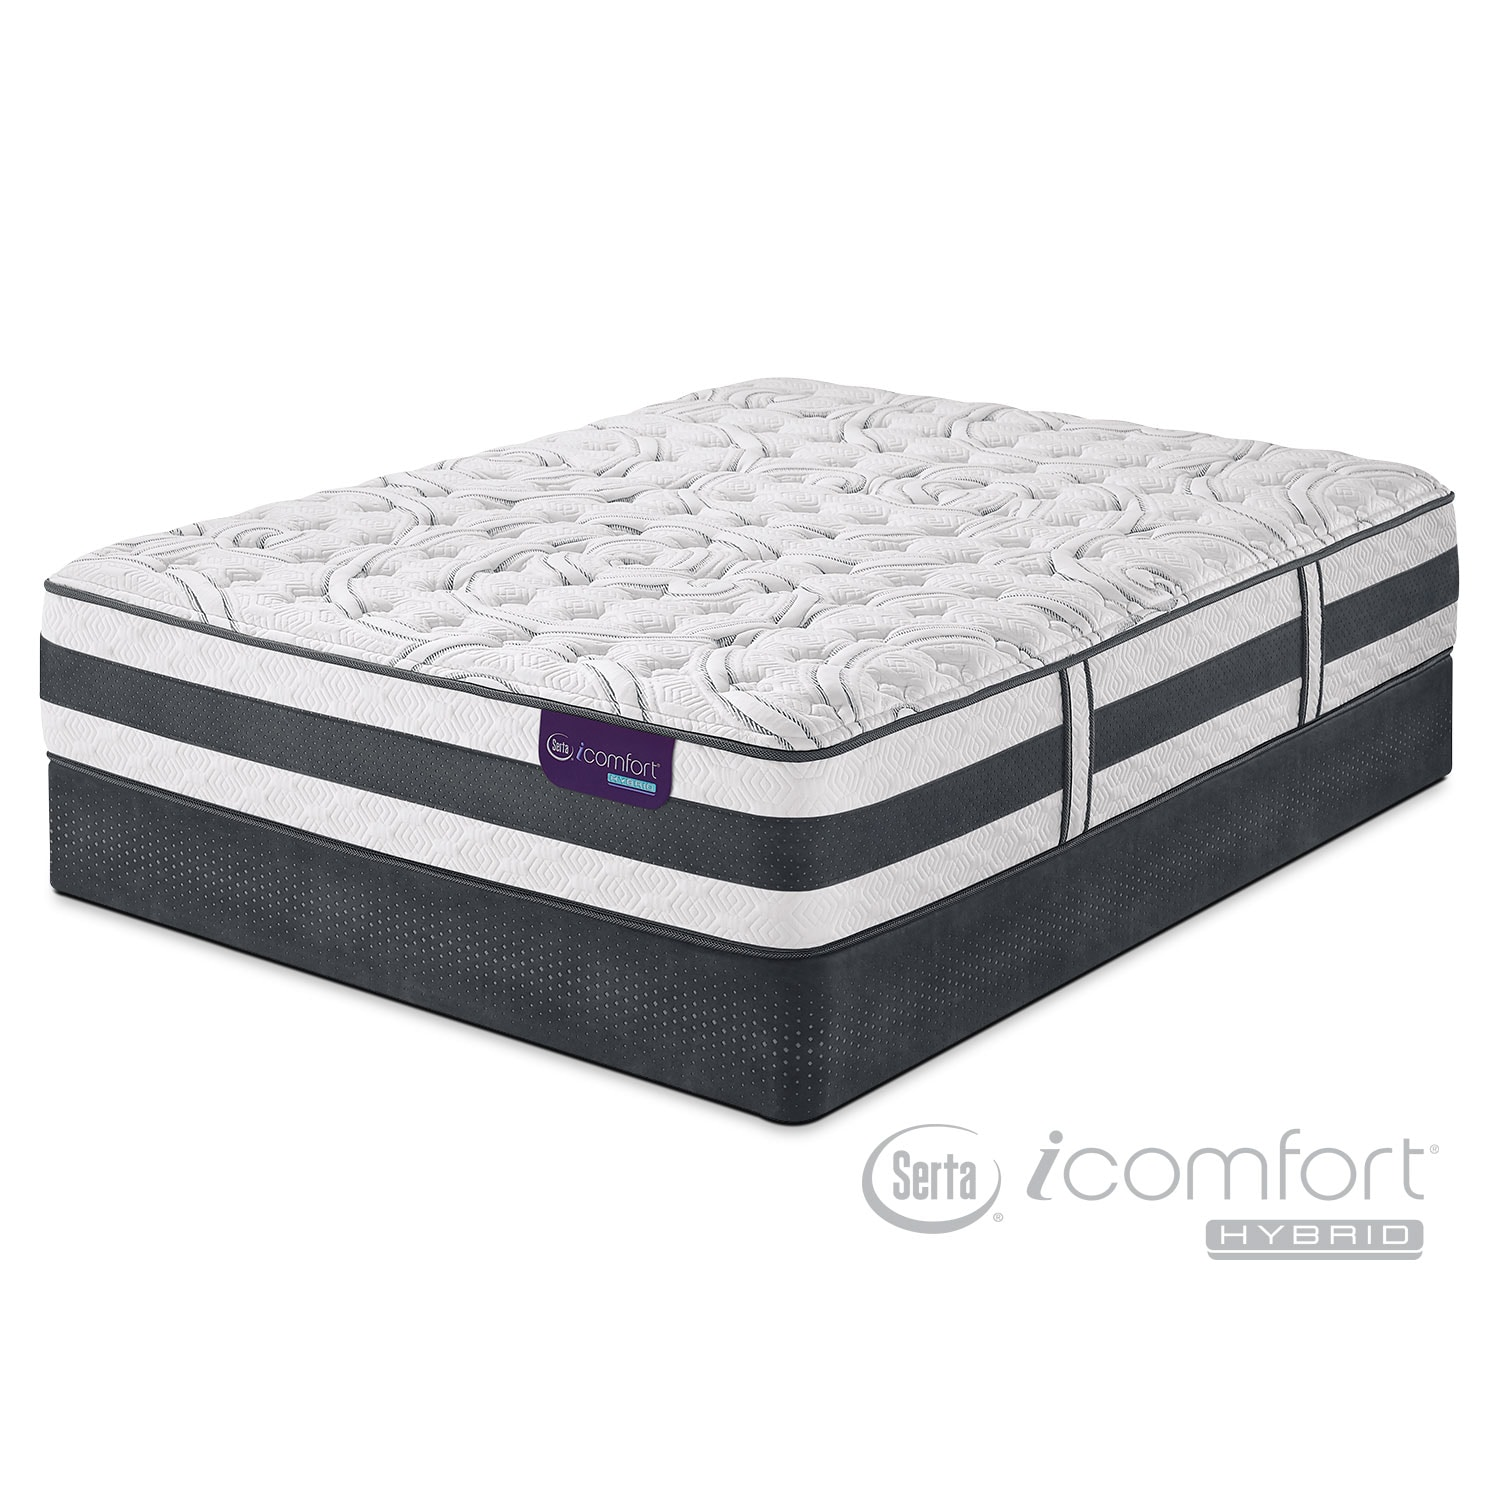 Mattresses and Bedding - Applause II Firm California King Mattress/Split Foundation Set